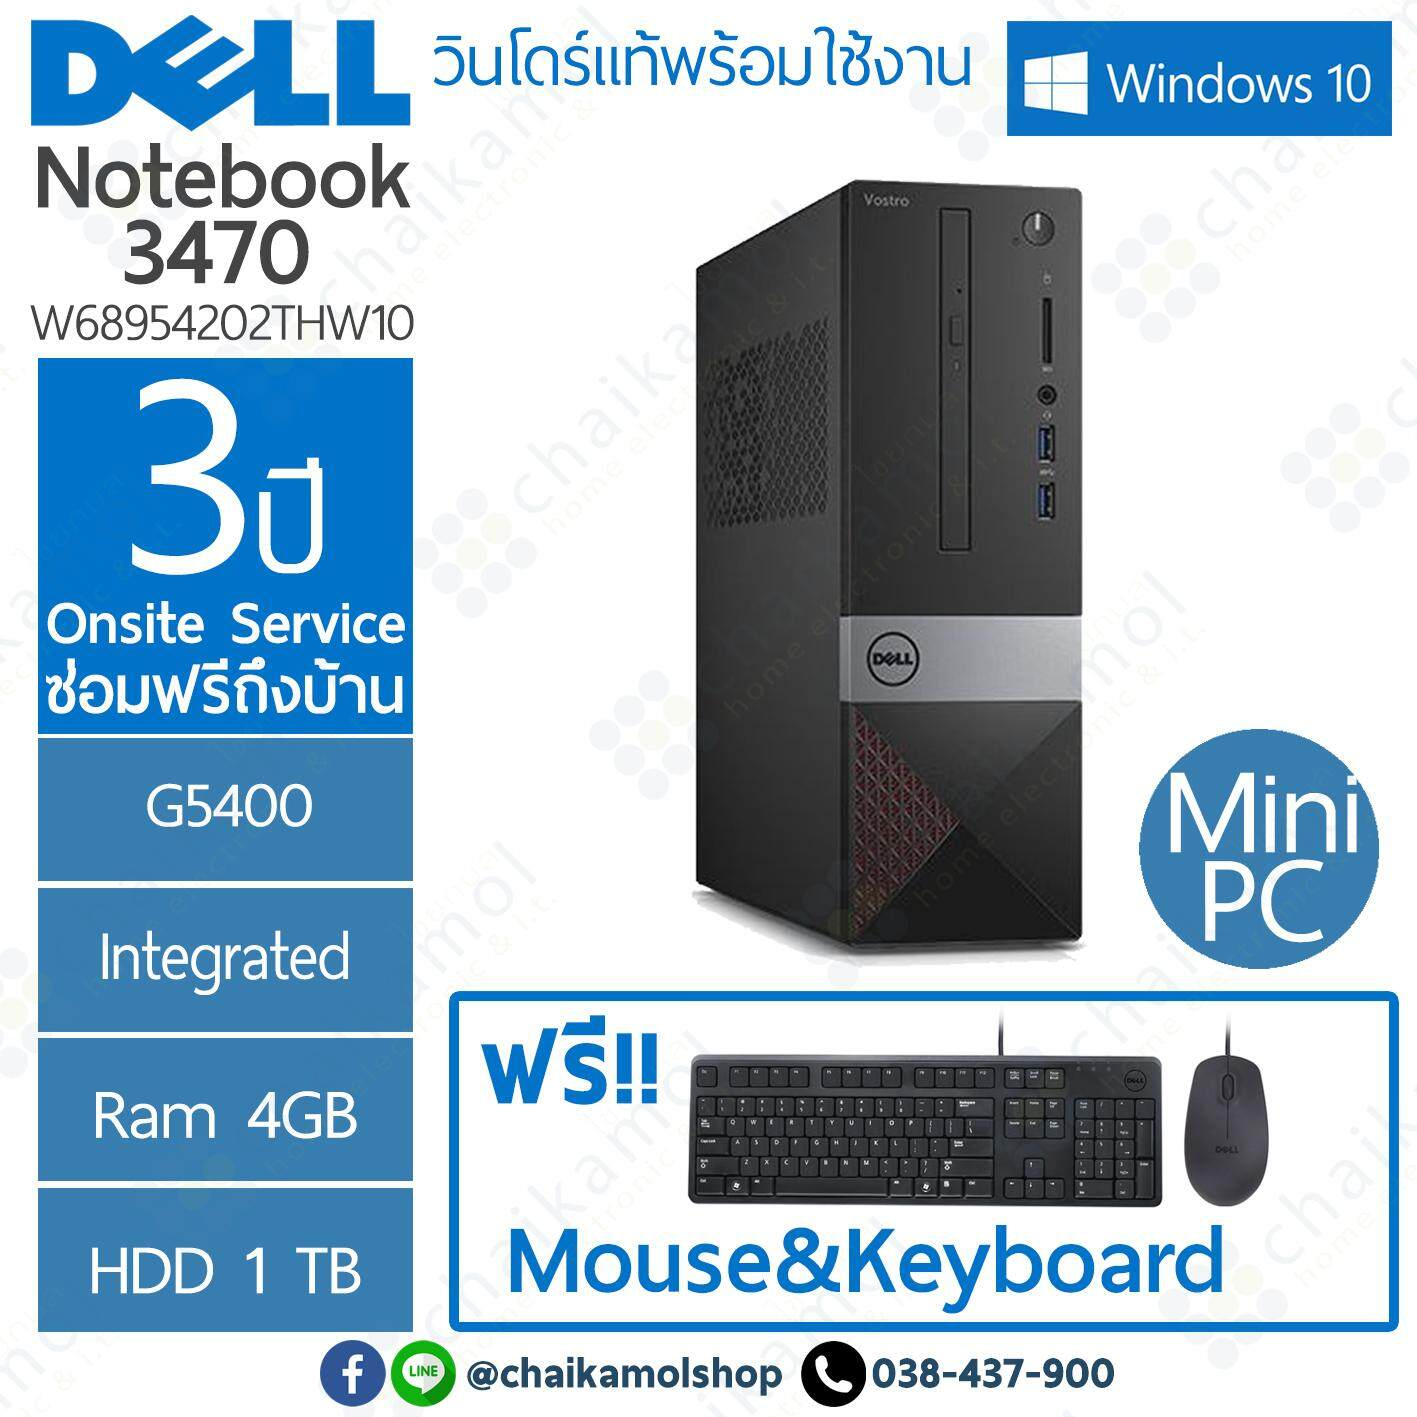 Sell mini pc 4gb cheapest best quality | TH Store